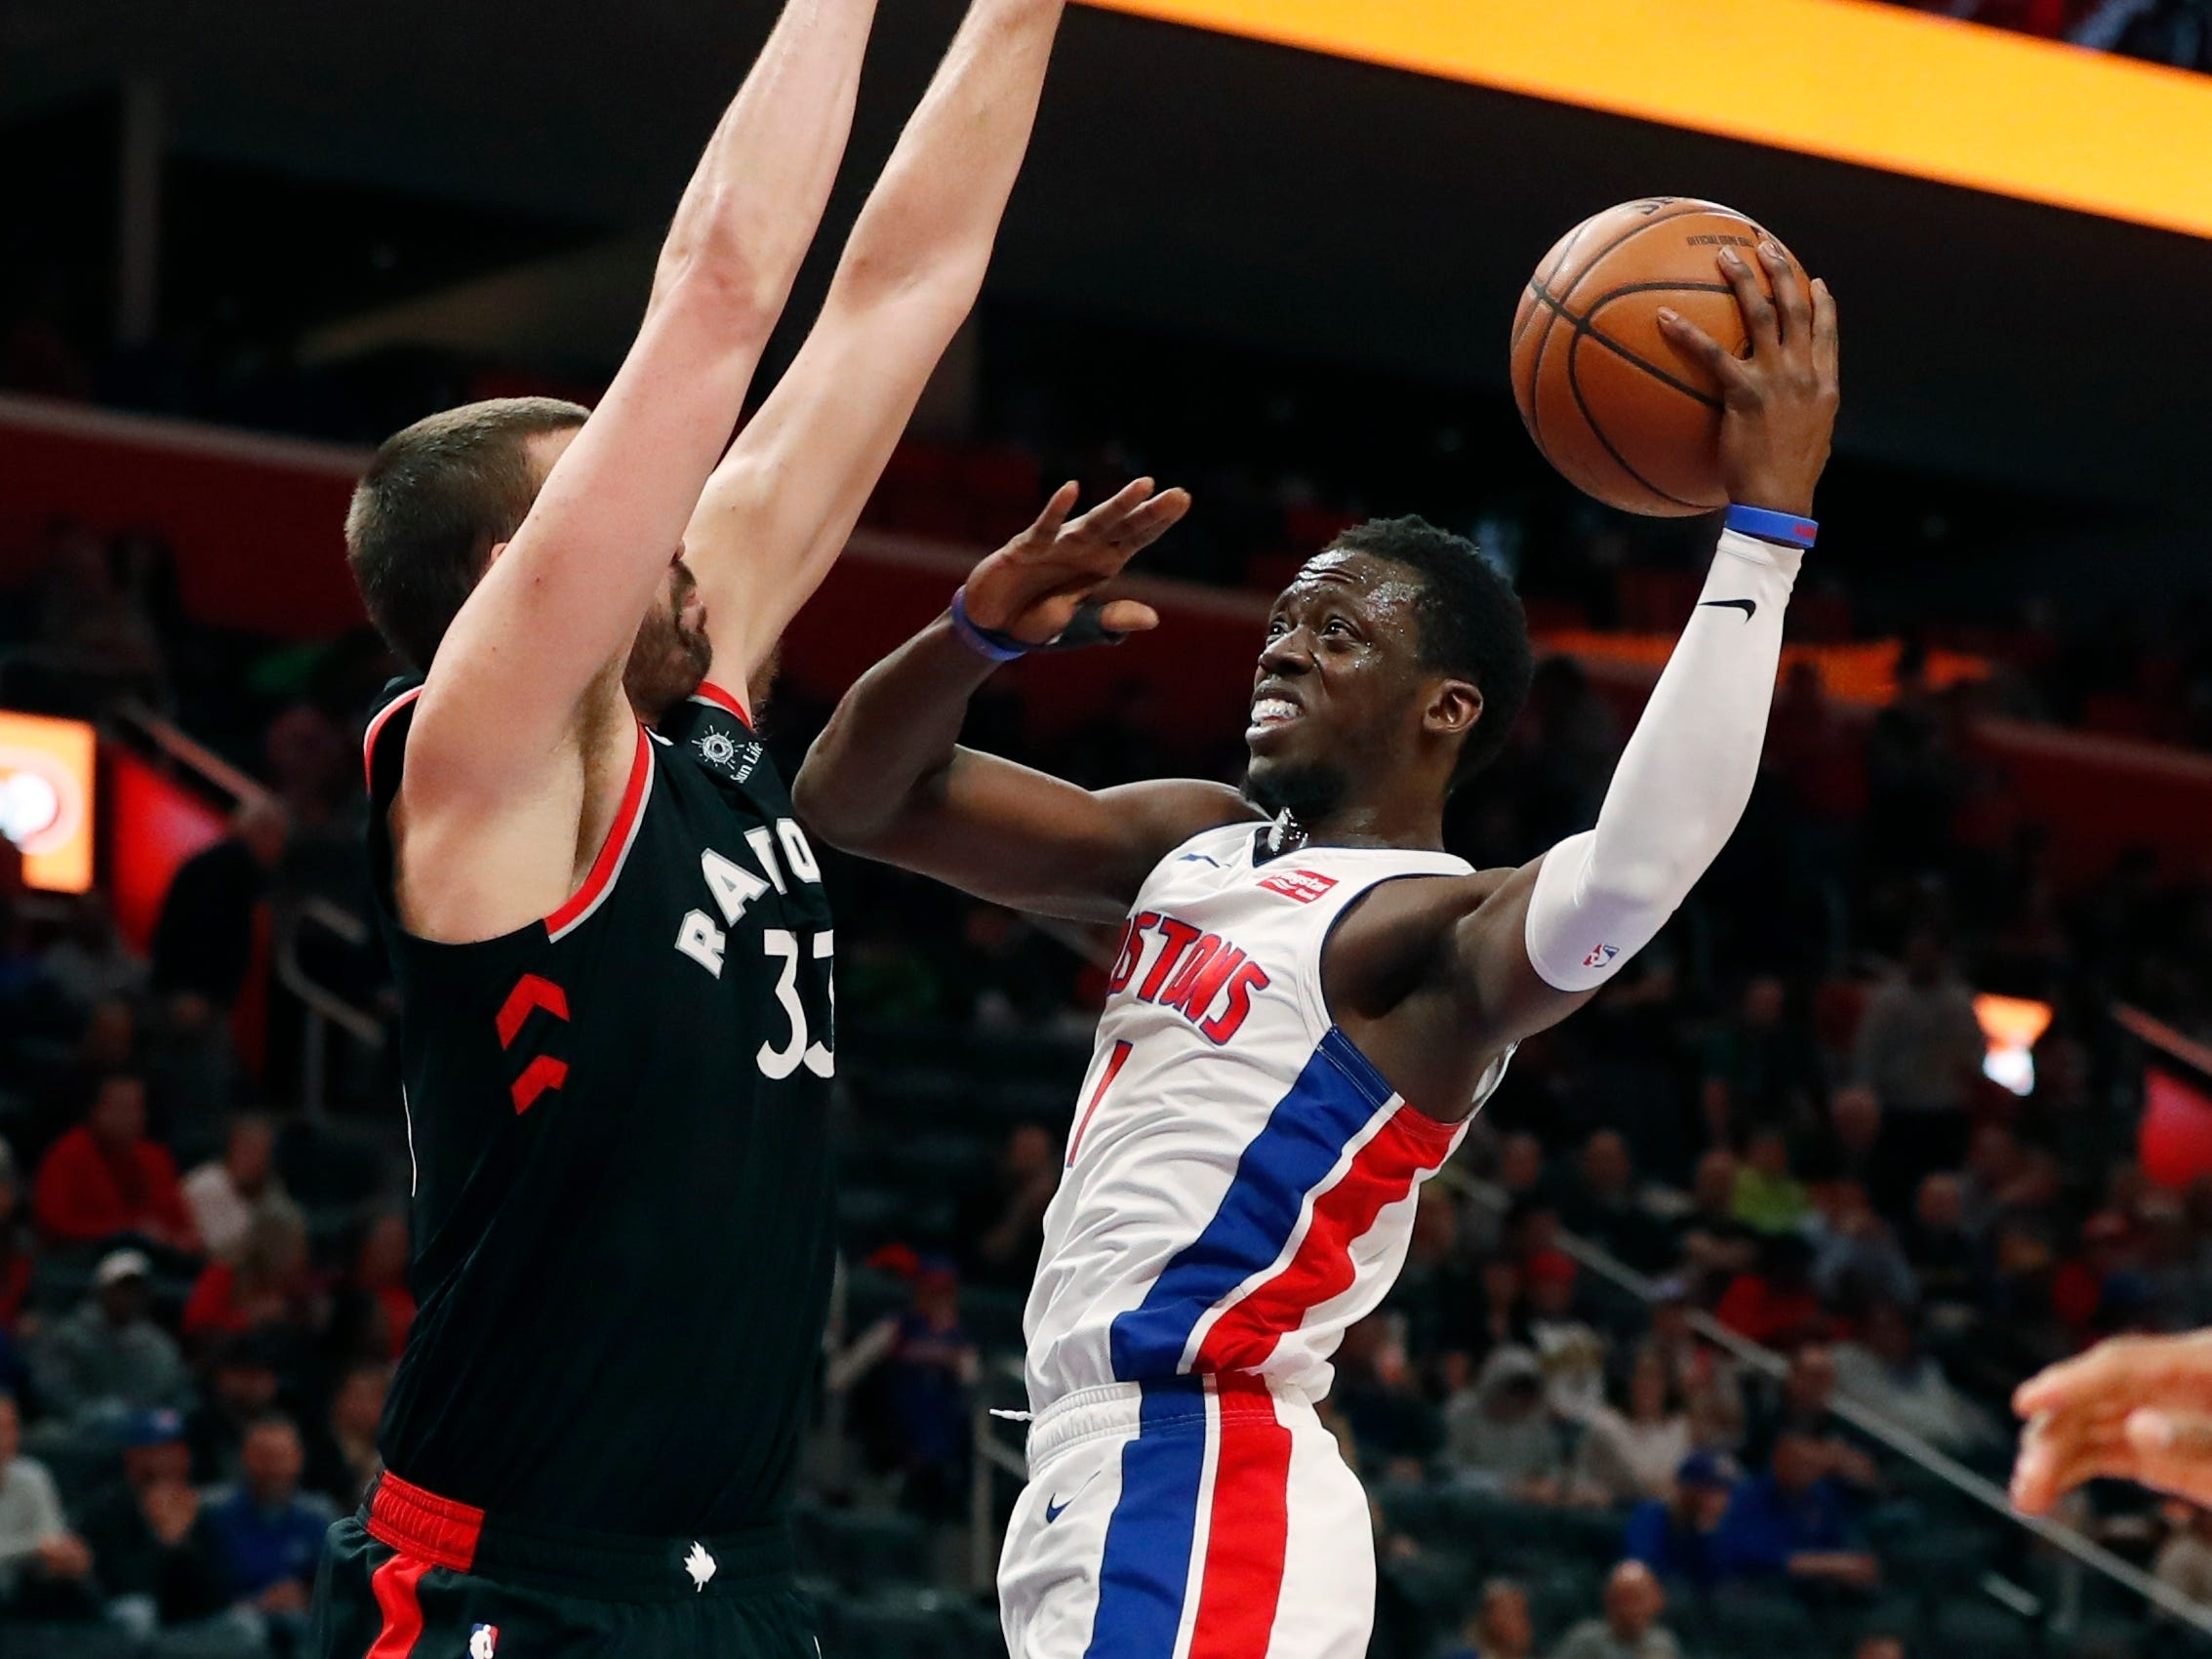 Reggie Jackson attempts a layup over Toronto Raptors center Marc Gasol during the second half of the Detroit Pistons' 110-107 win Sunday, March 17, 2019, in Detroit.